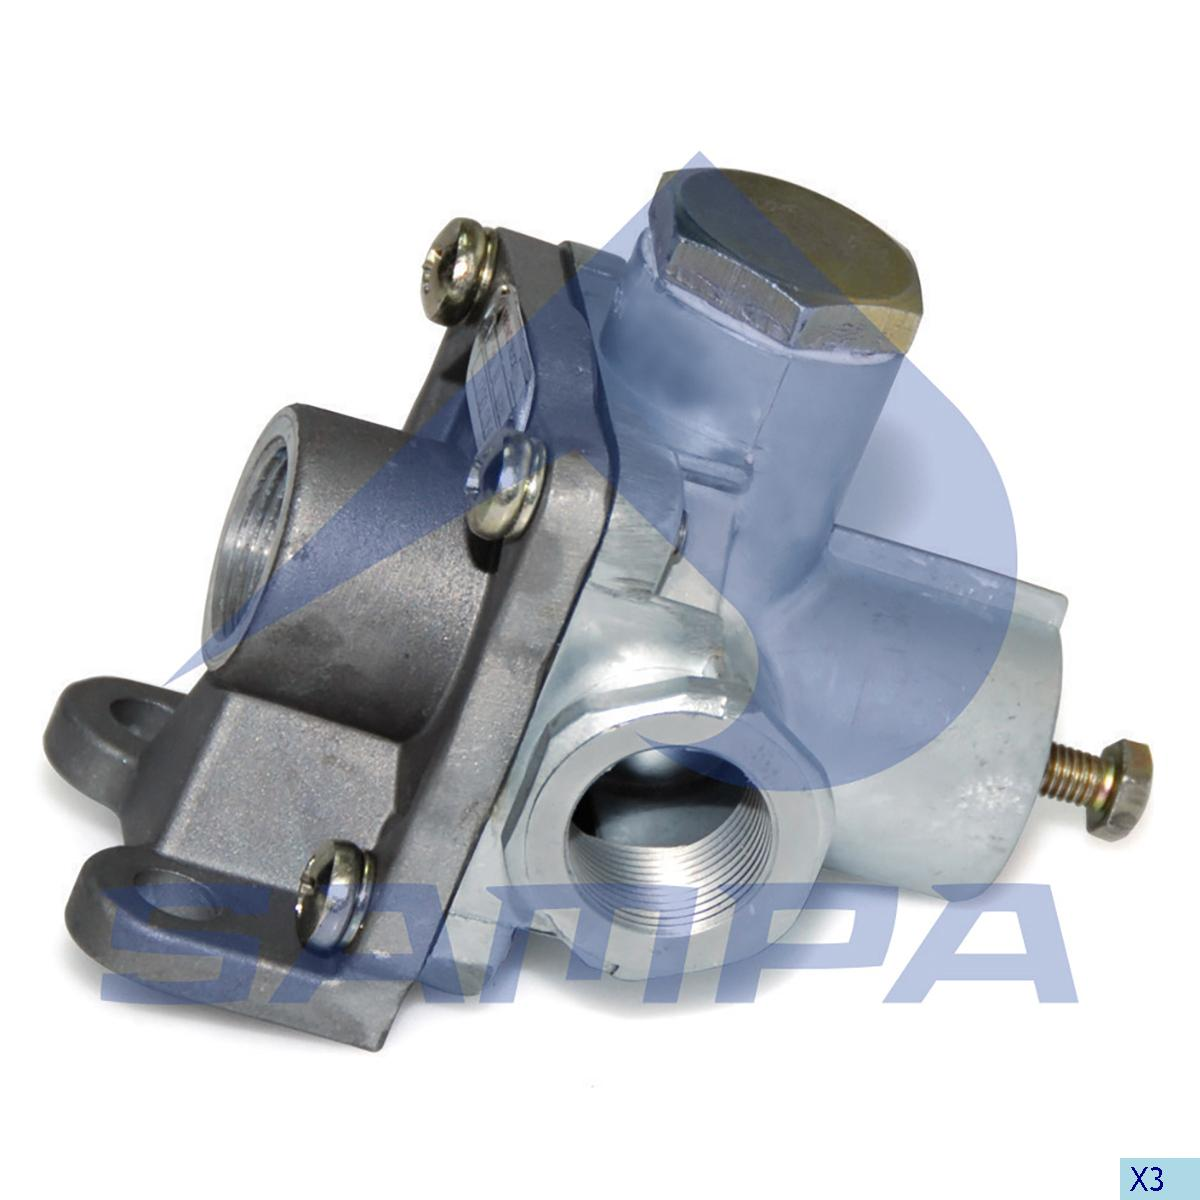 Adaptor Valve, Bergische, Compressed Air System